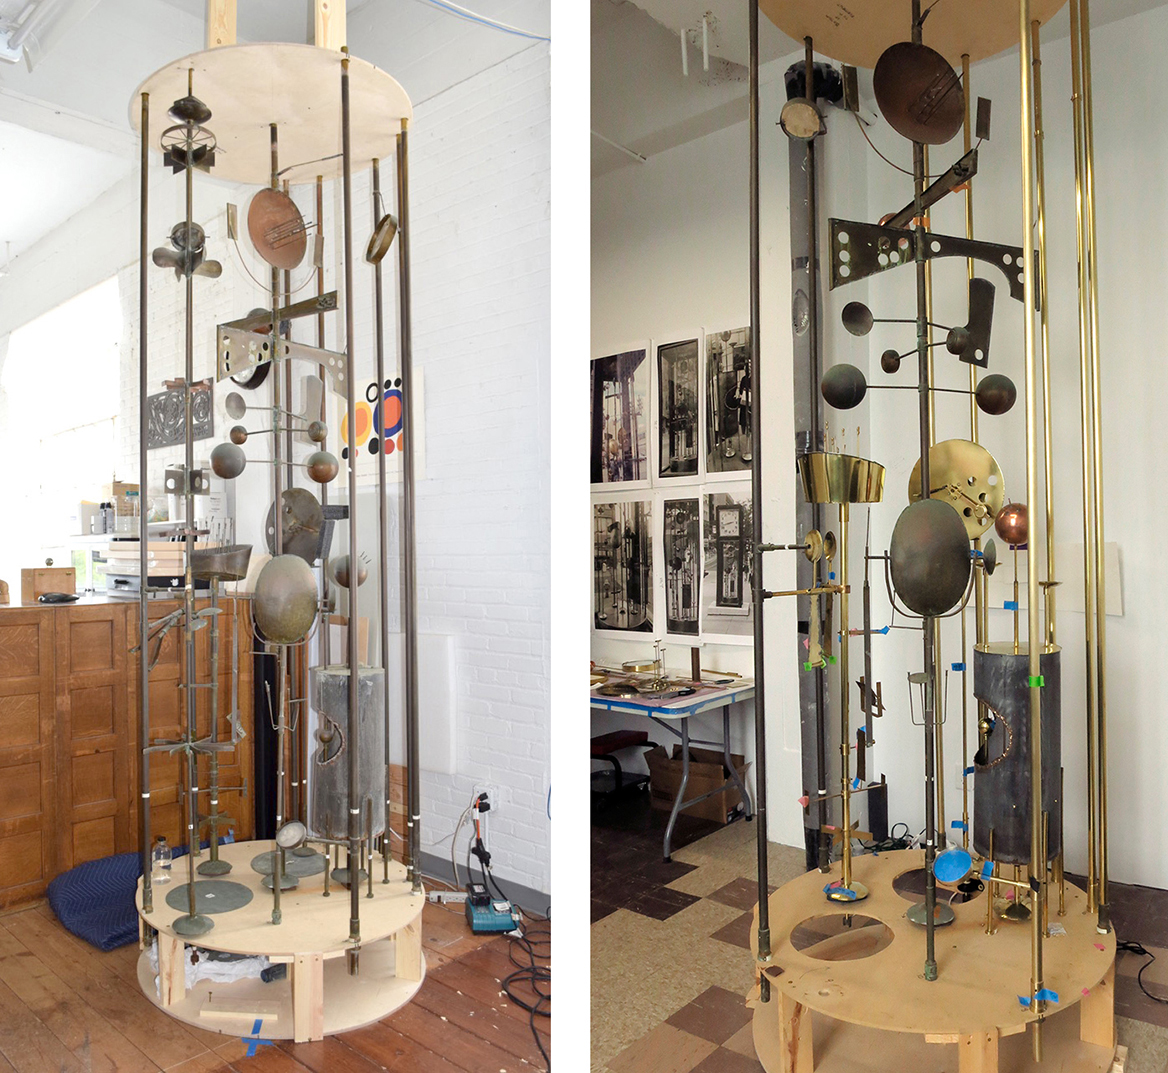 Jack Nelson's 1968 Sculpture Clock before (left) and after (right) restoration